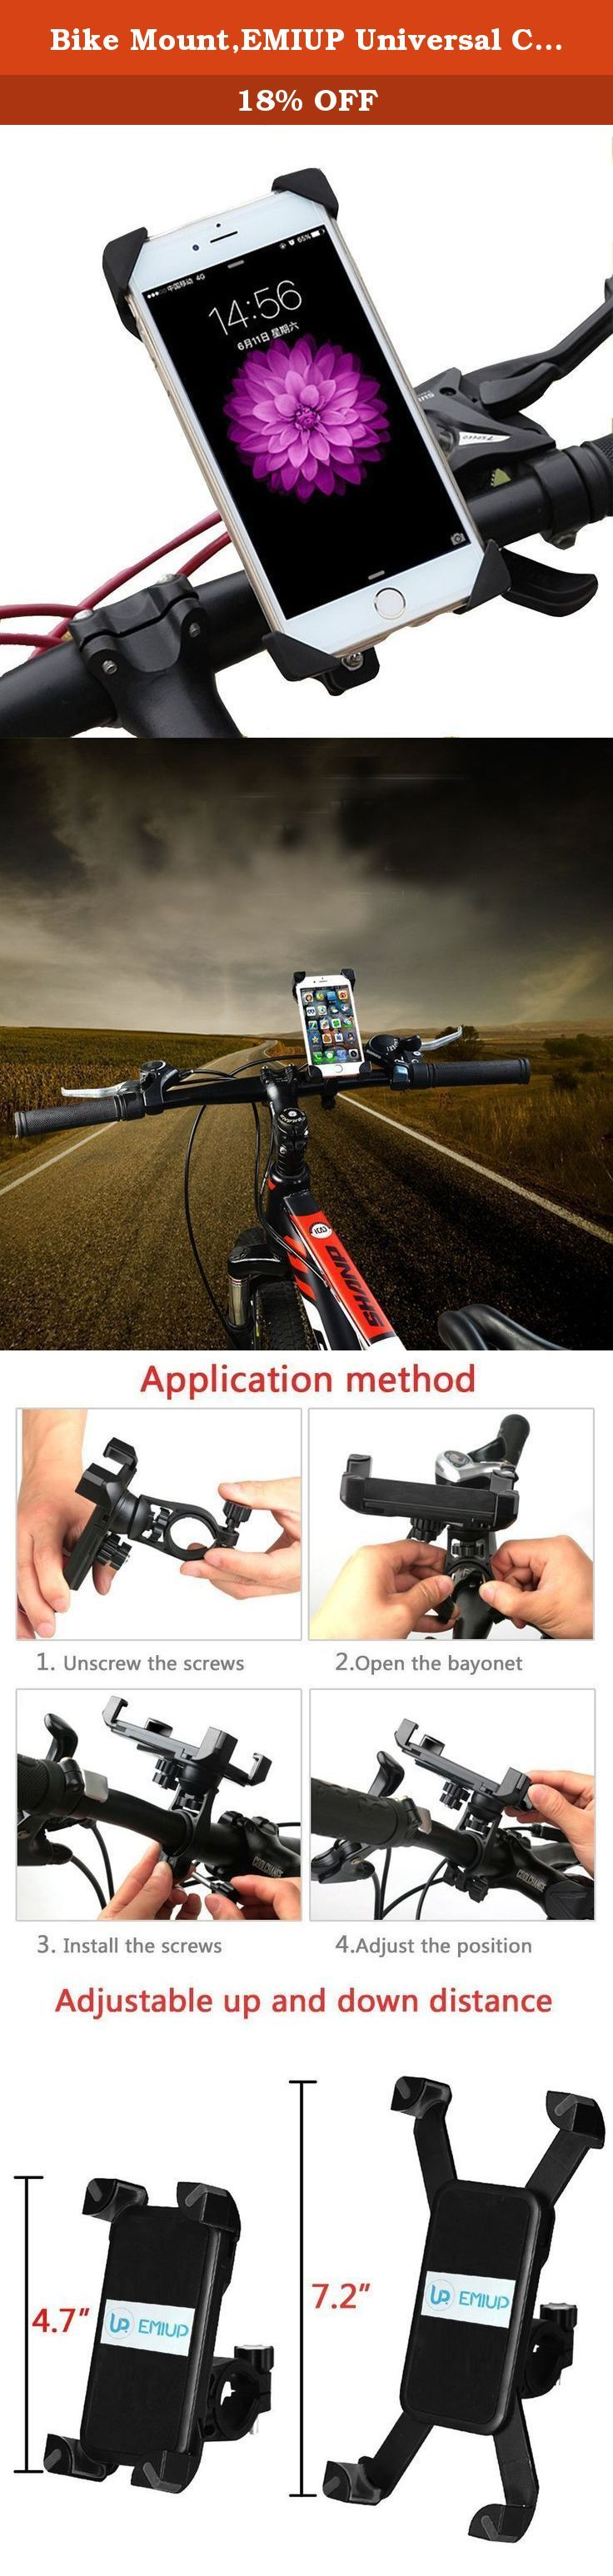 Bike Mount,EMIUP Universal Cell Phone Bicycle Handlebar & Motorcycle Holder Cradle with 360 Rotate for iPhone 6s 6 5s 5c 5,Samsung Galaxy S5 S4 S3, Google Nexus 5 4 and GPS Device Up to 3.7in wide. Our difference: Upgrade product. Use the buckle structure instead of the strap and grip. Lock your device much more secure. Never worry falling off. Anti-shake and anti-vibration even though the road condition is poor. Compatibility: Phone size: the holder is 4.5-7 inches length, 2.3-3.5 inches...